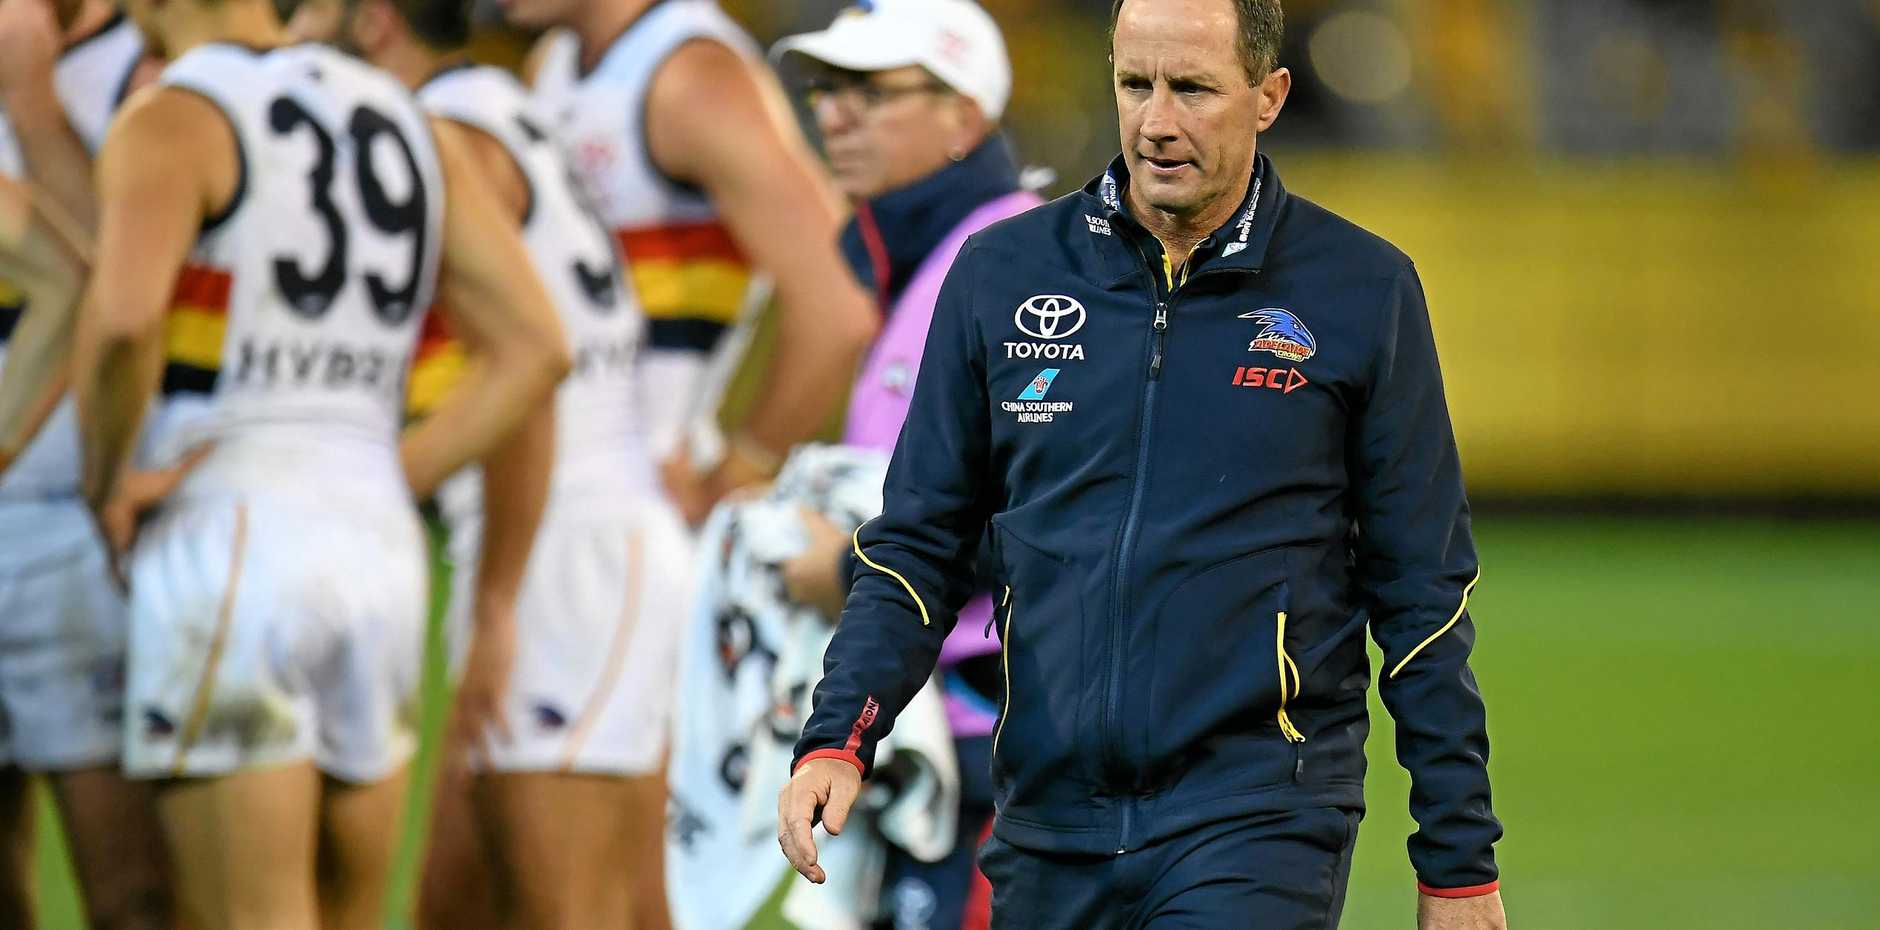 Crows coach Don Pyke does not look a happy man after addressing his players during their diastrous loss to Hawthorn on June 16.